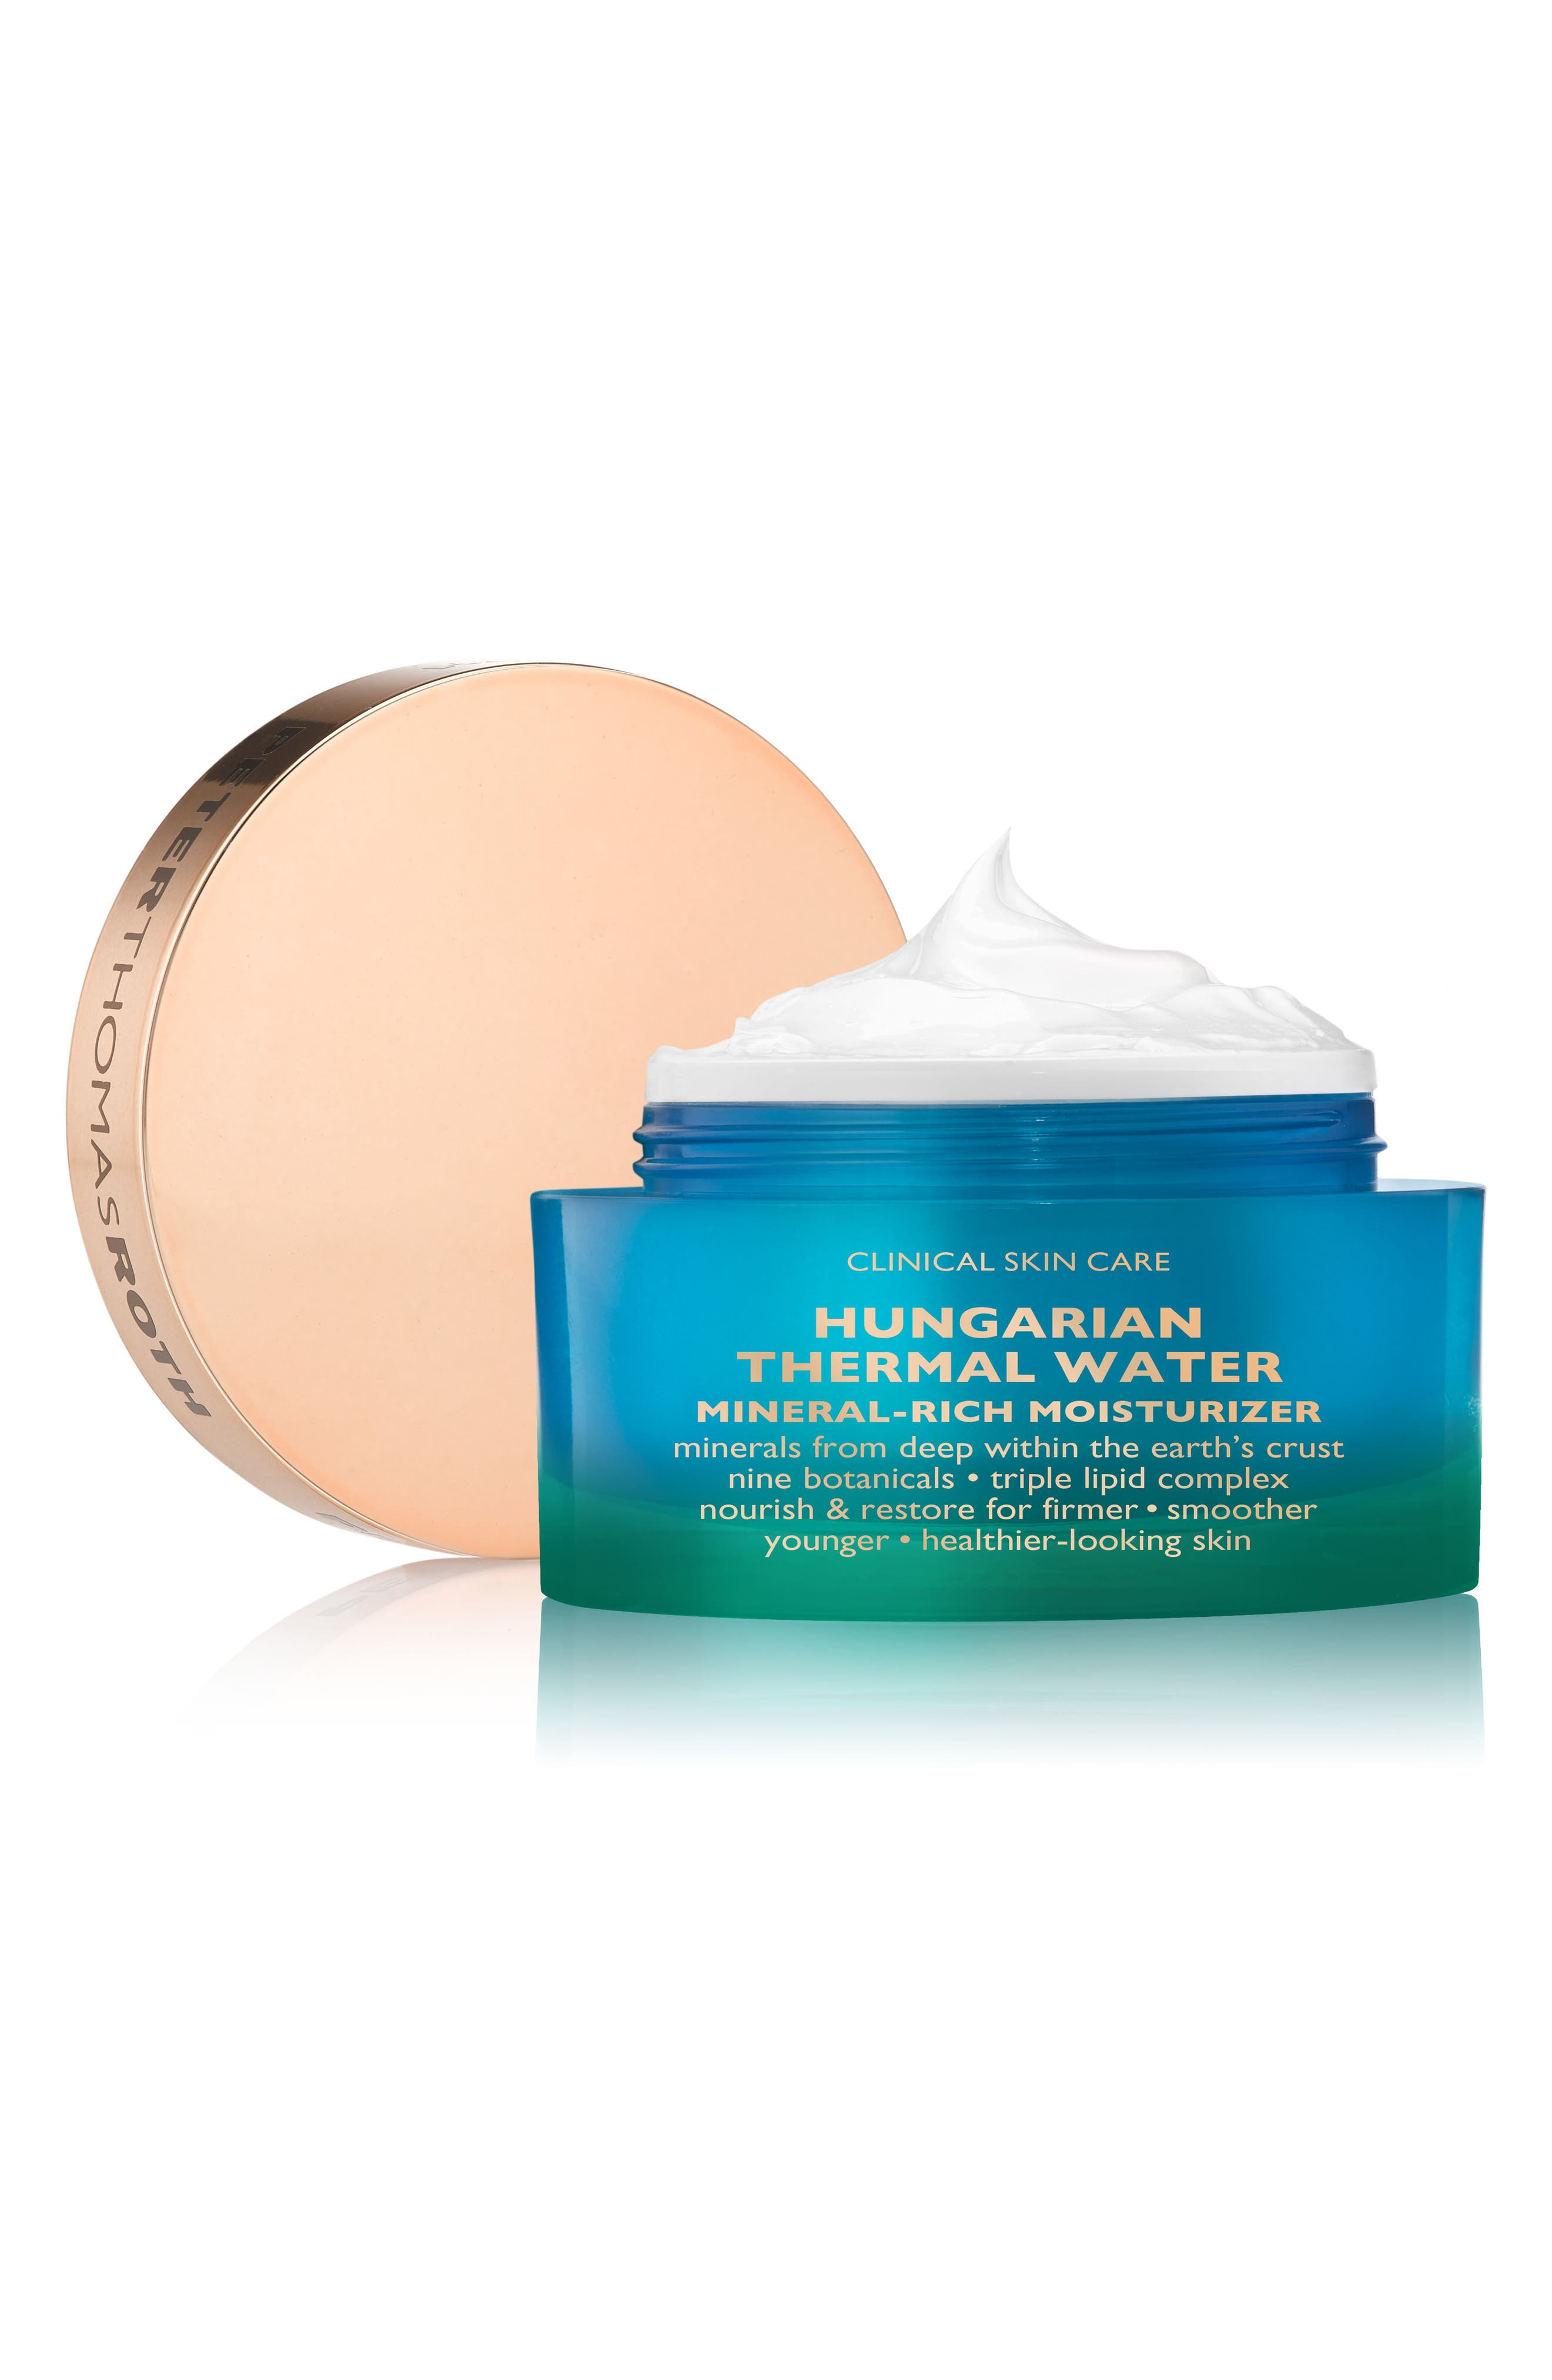 Hungarian Thermal Water Mineral-Rich Moisturizer,                             Alternate thumbnail 3, color,                             No Color